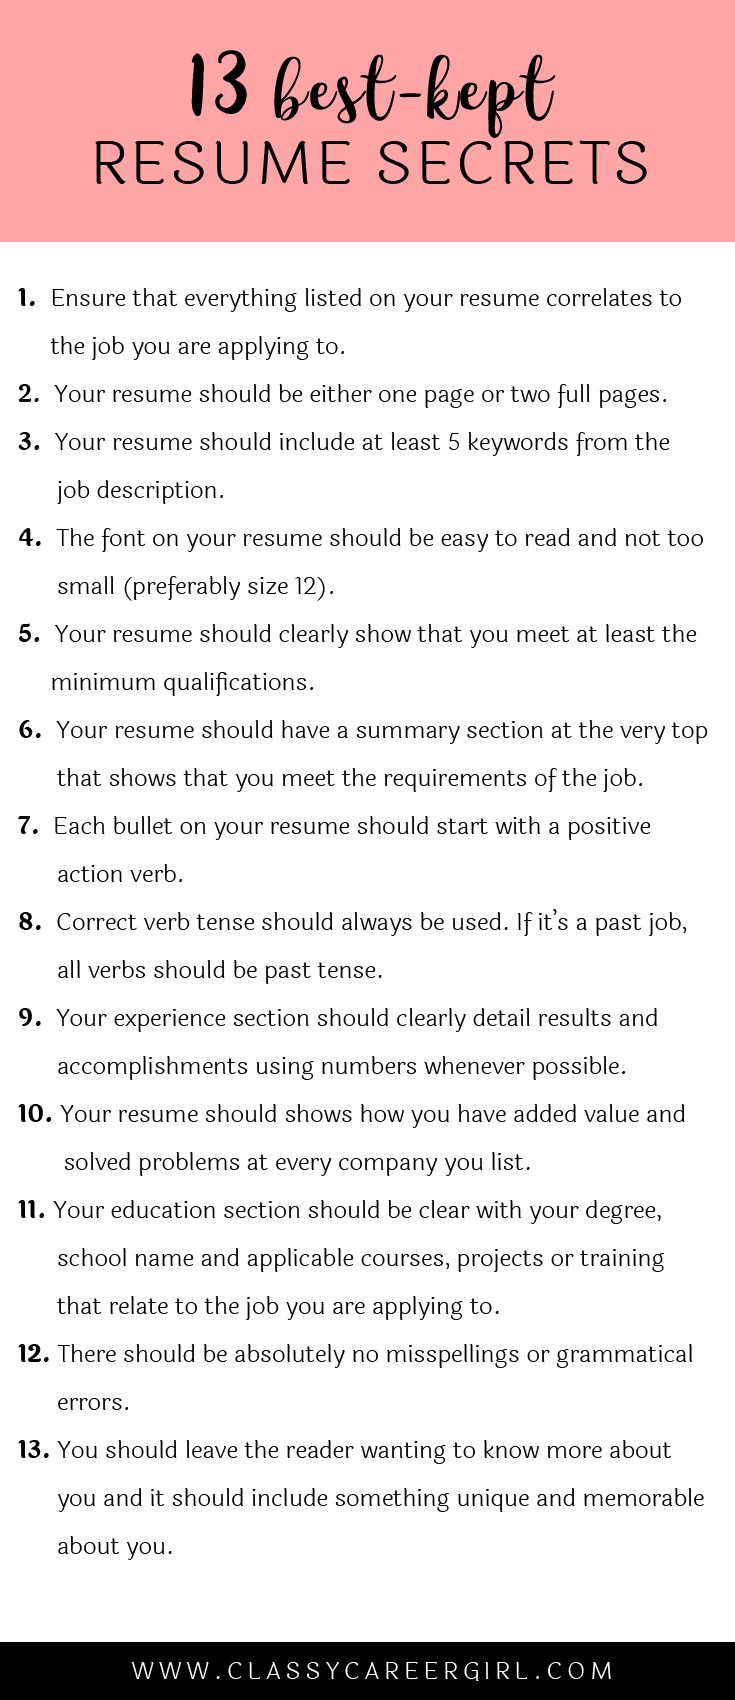 Opposenewapstandardsus  Picturesque  Ideas About Resume On Pinterest  Cv Format Resume Cv And  With Licious Some Hiring Managers Will Toss Your Resume Out If You Dont Know These  With Beautiful Warehouse Resumes Also Communication Skills On Resume In Addition Fast Food Resume Sample And Fake Resume Generator As Well As Resume Formate Additionally Resume Keywords List From Pinterestcom With Opposenewapstandardsus  Licious  Ideas About Resume On Pinterest  Cv Format Resume Cv And  With Beautiful Some Hiring Managers Will Toss Your Resume Out If You Dont Know These  And Picturesque Warehouse Resumes Also Communication Skills On Resume In Addition Fast Food Resume Sample From Pinterestcom